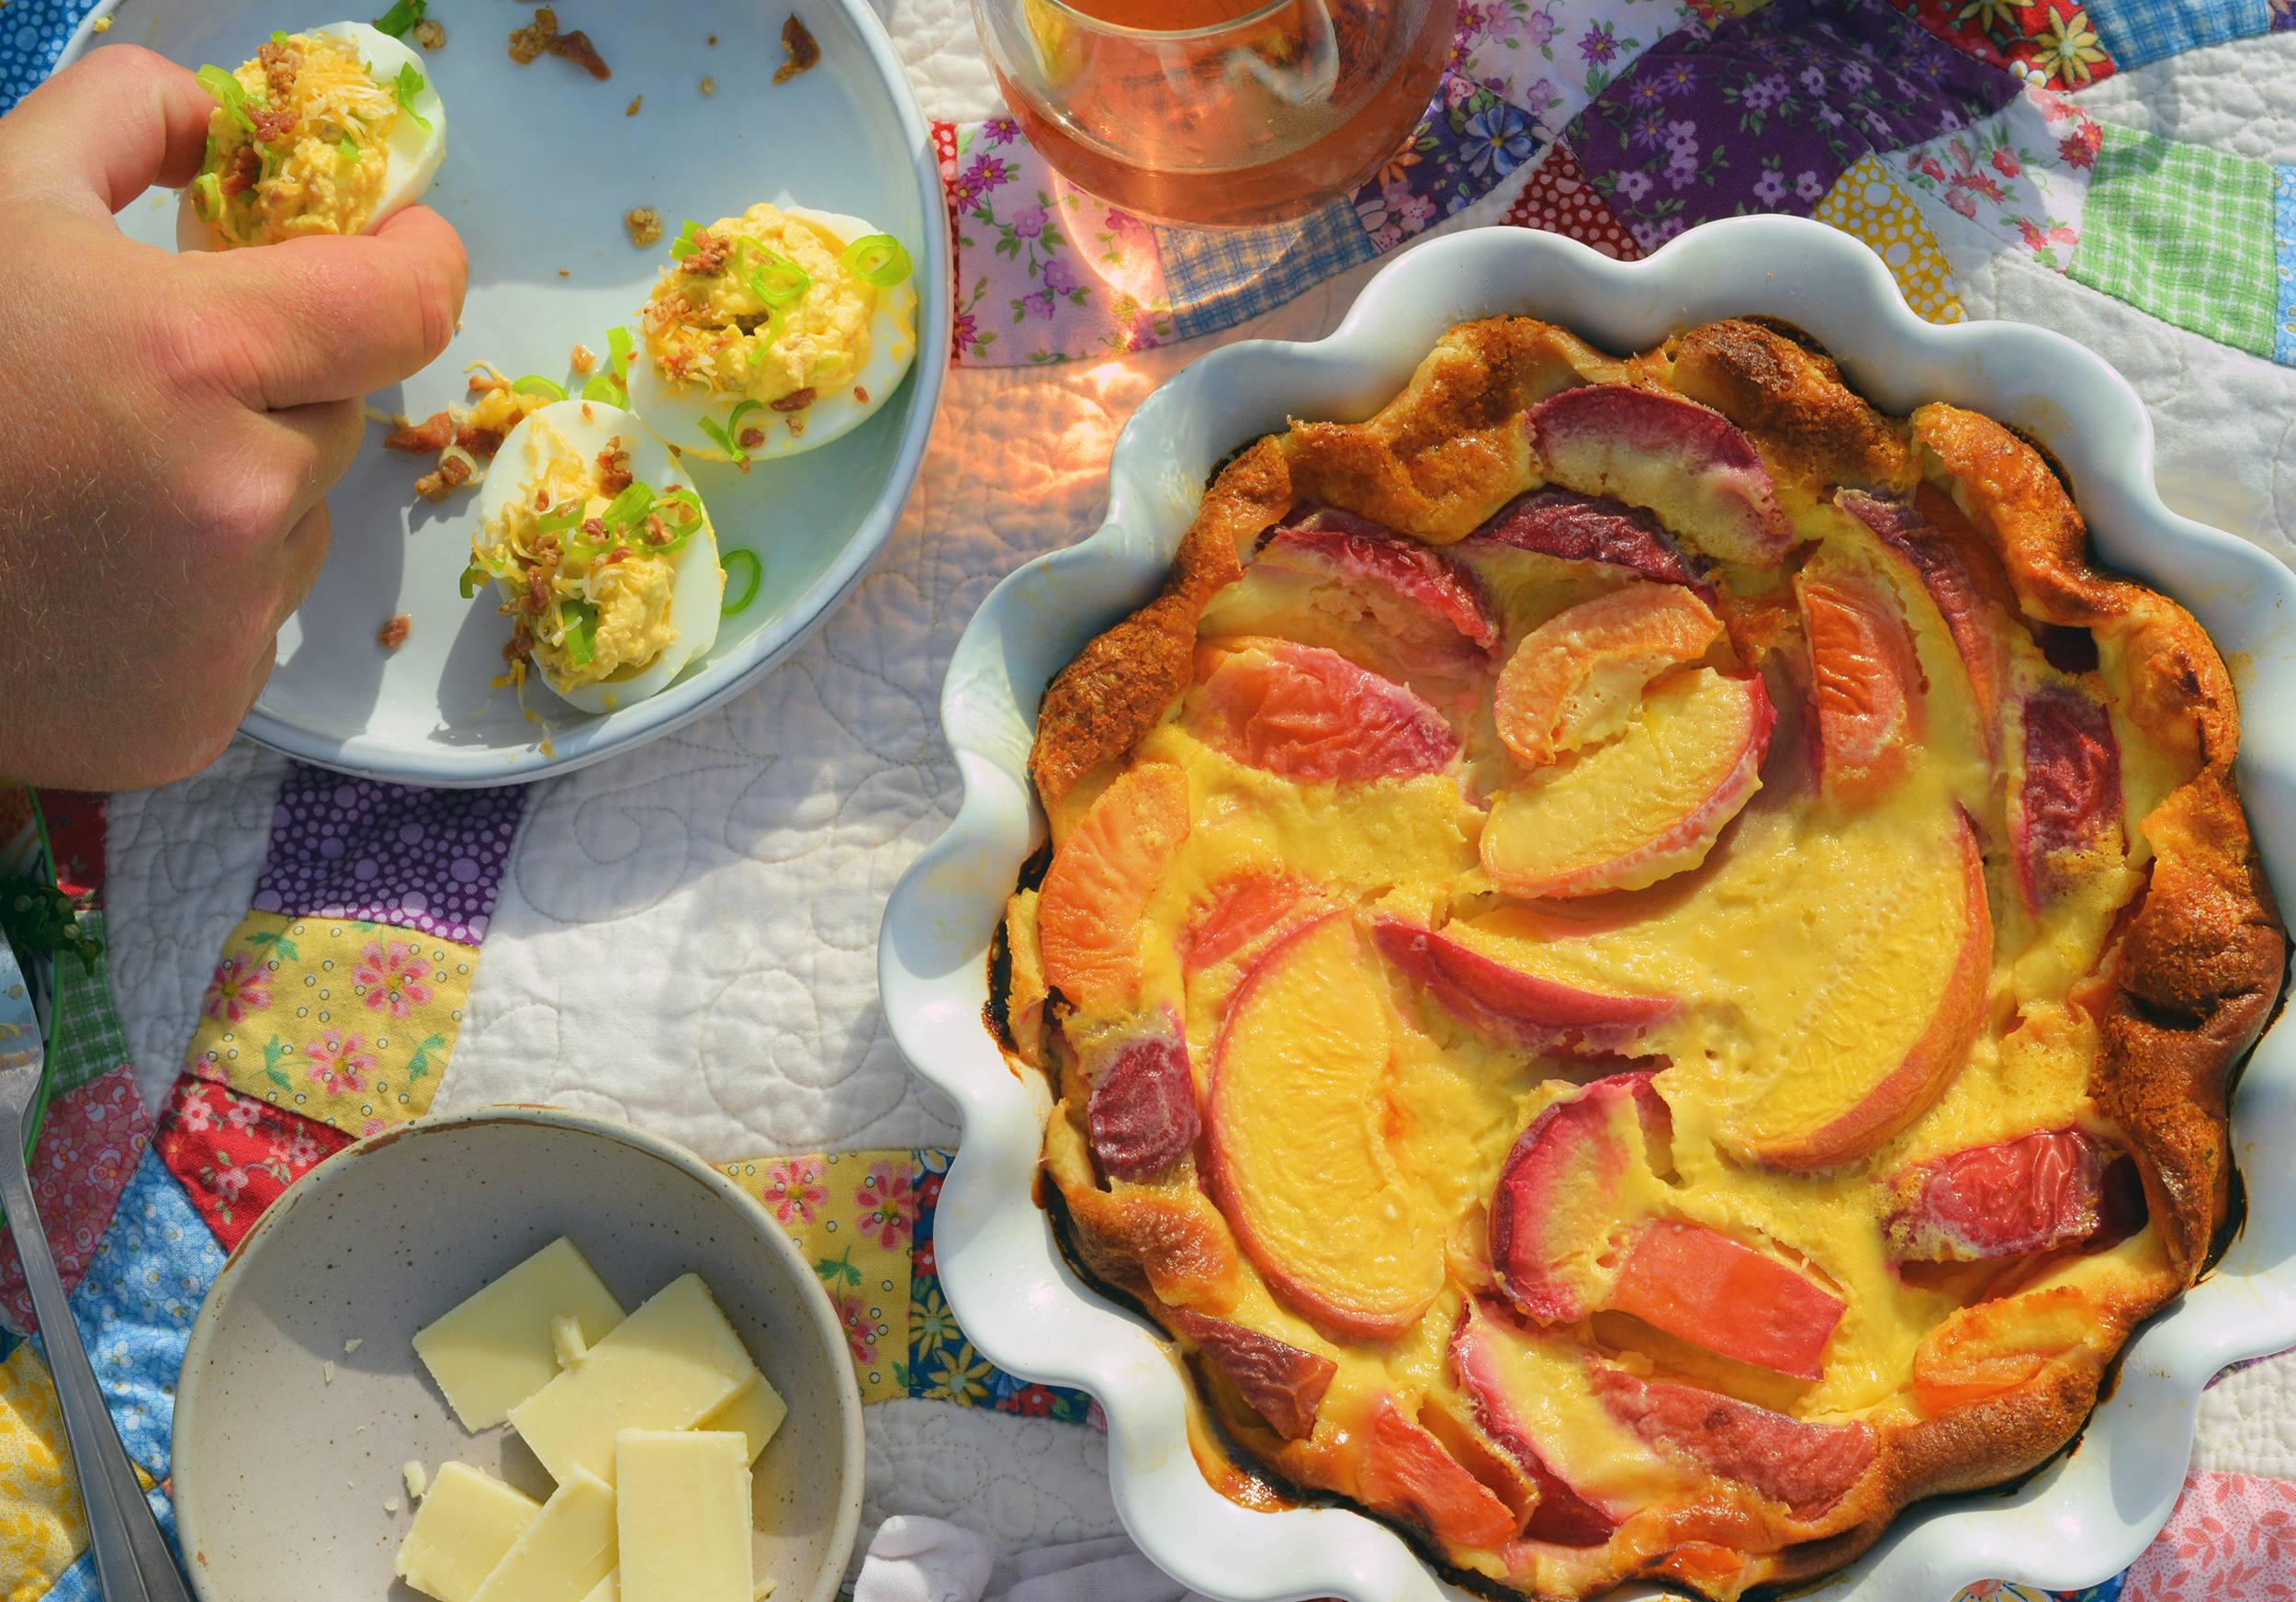 Stone Fruit Clafoutis - Global Dish - Stephanie Arsenault